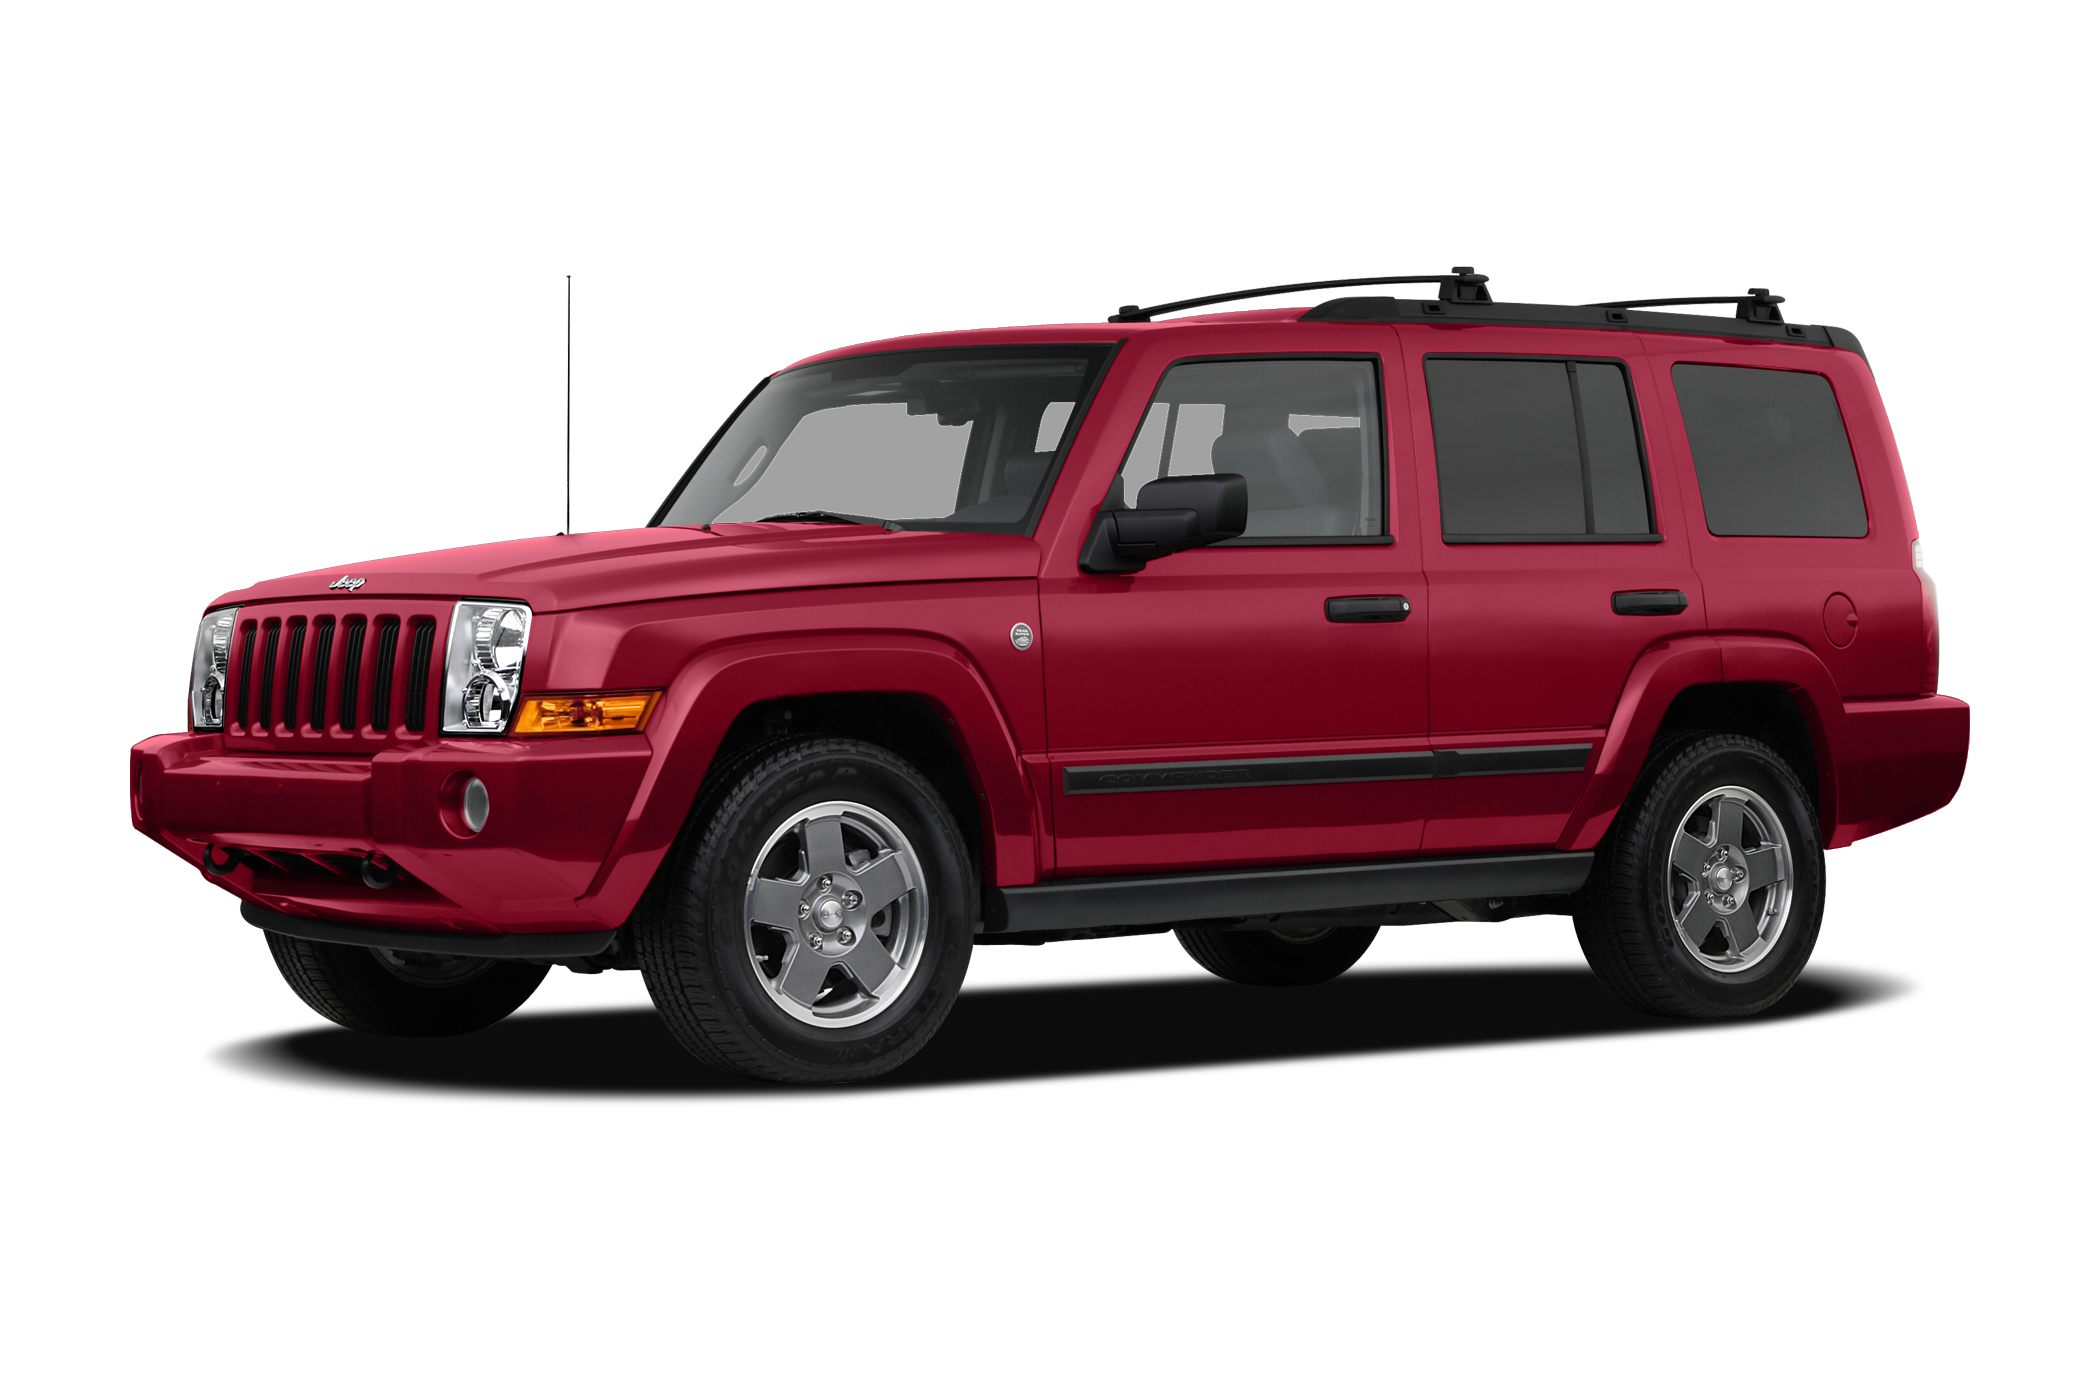 2007 Jeep Commander Sport SUV for sale in Winston Salem for $10,928 with 110,308 miles